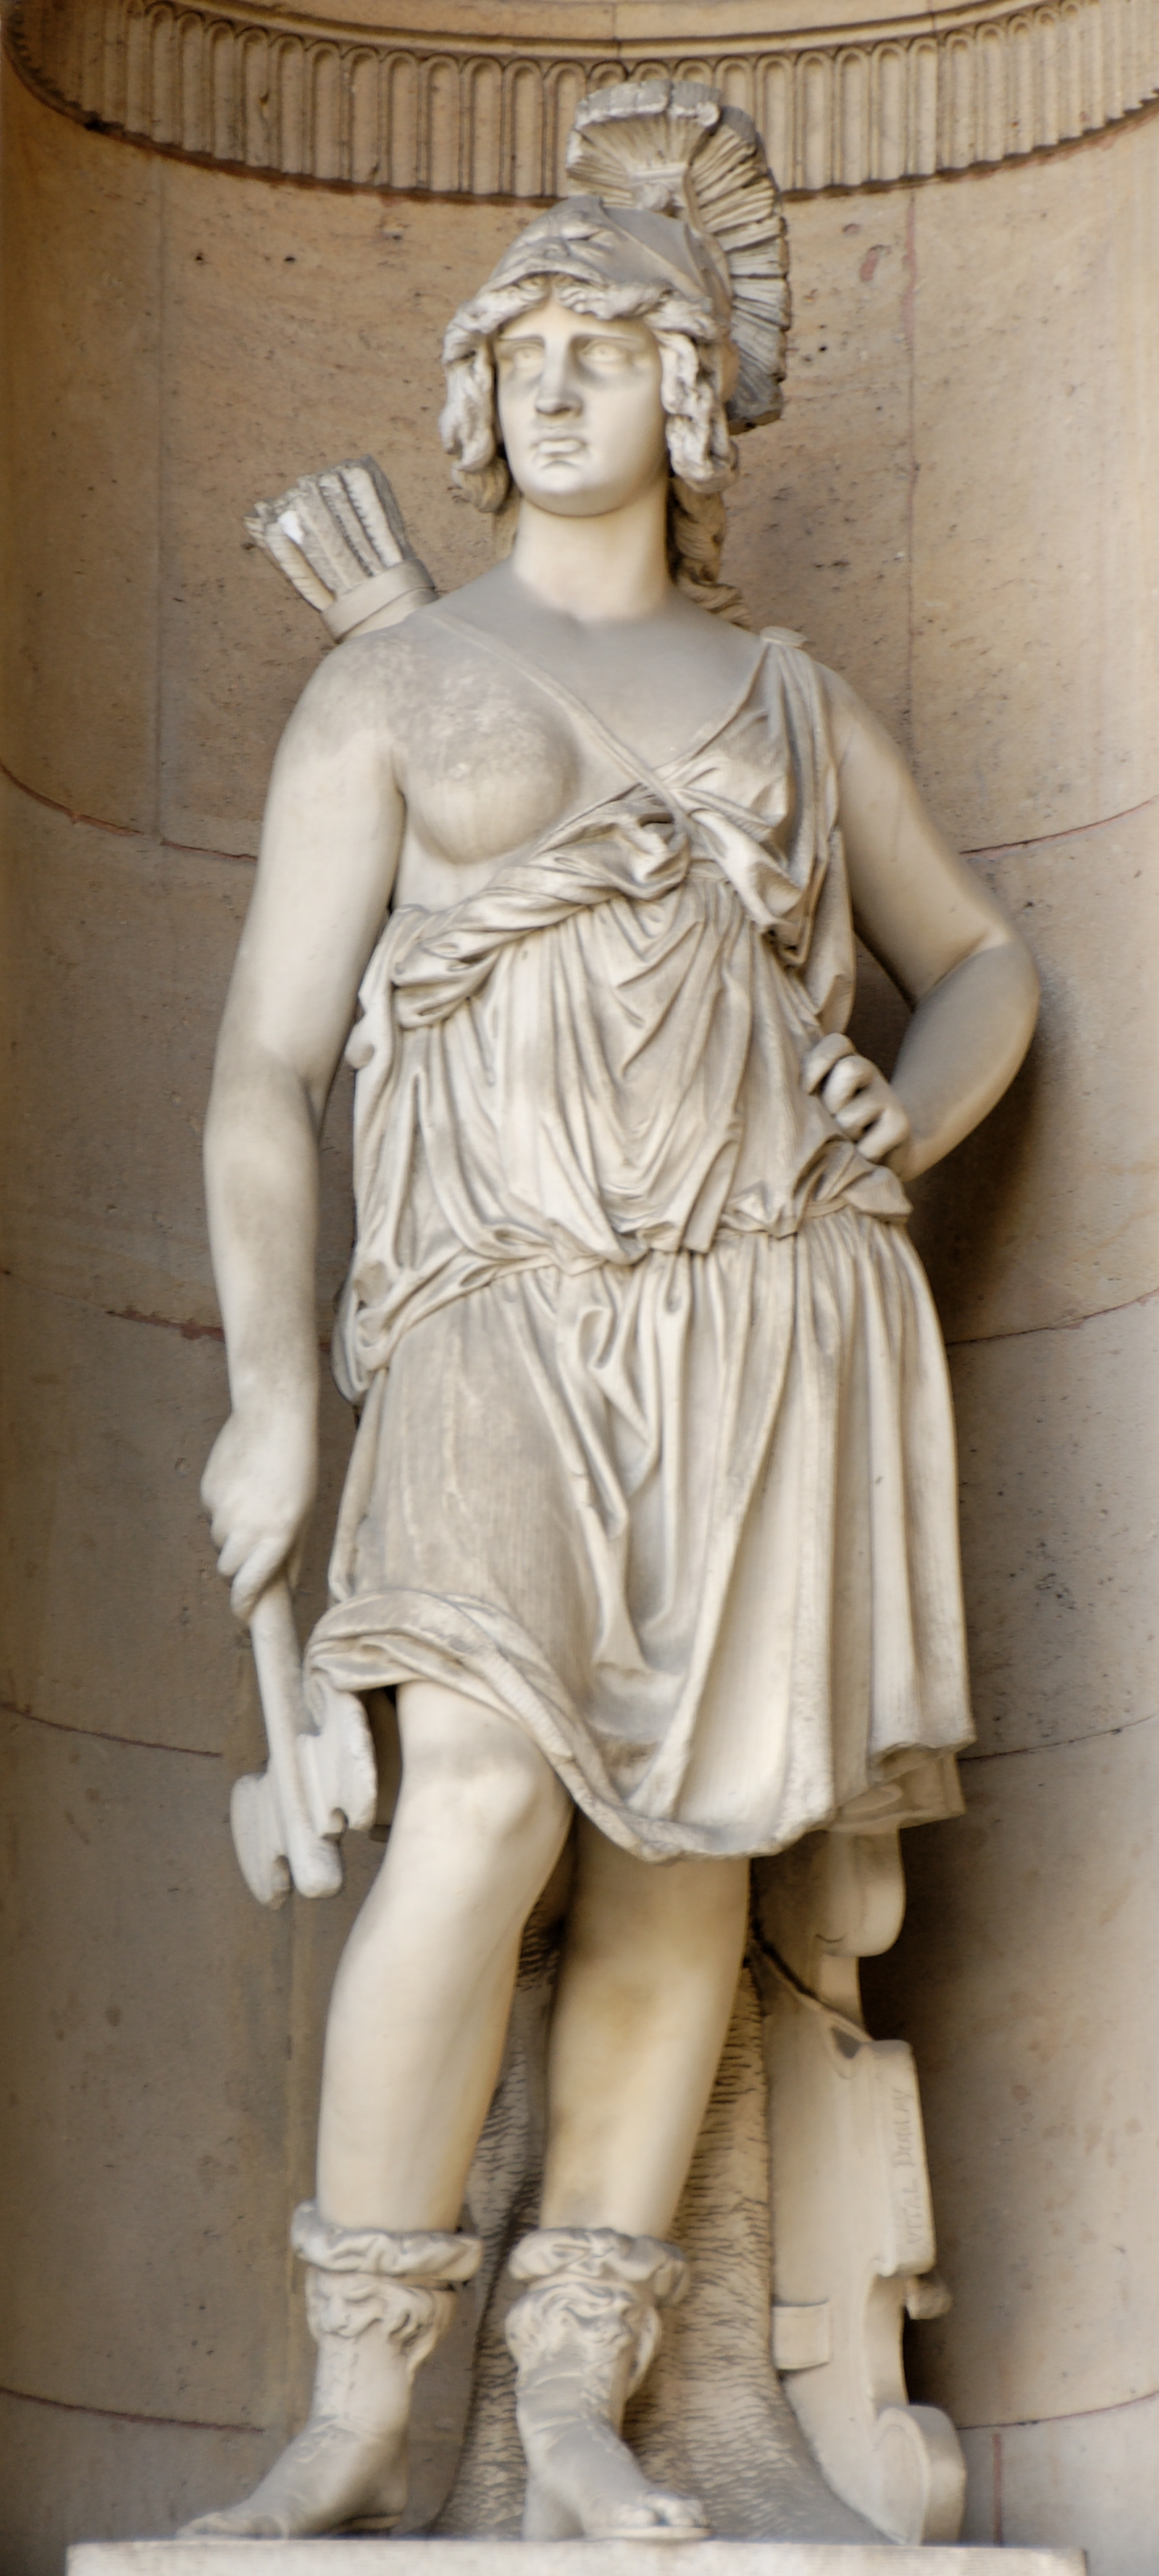 http://upload.wikimedia.org/wikipedia/commons/8/8e/Penthesilea_Dubray_cour_Carree_Louvre.jpg